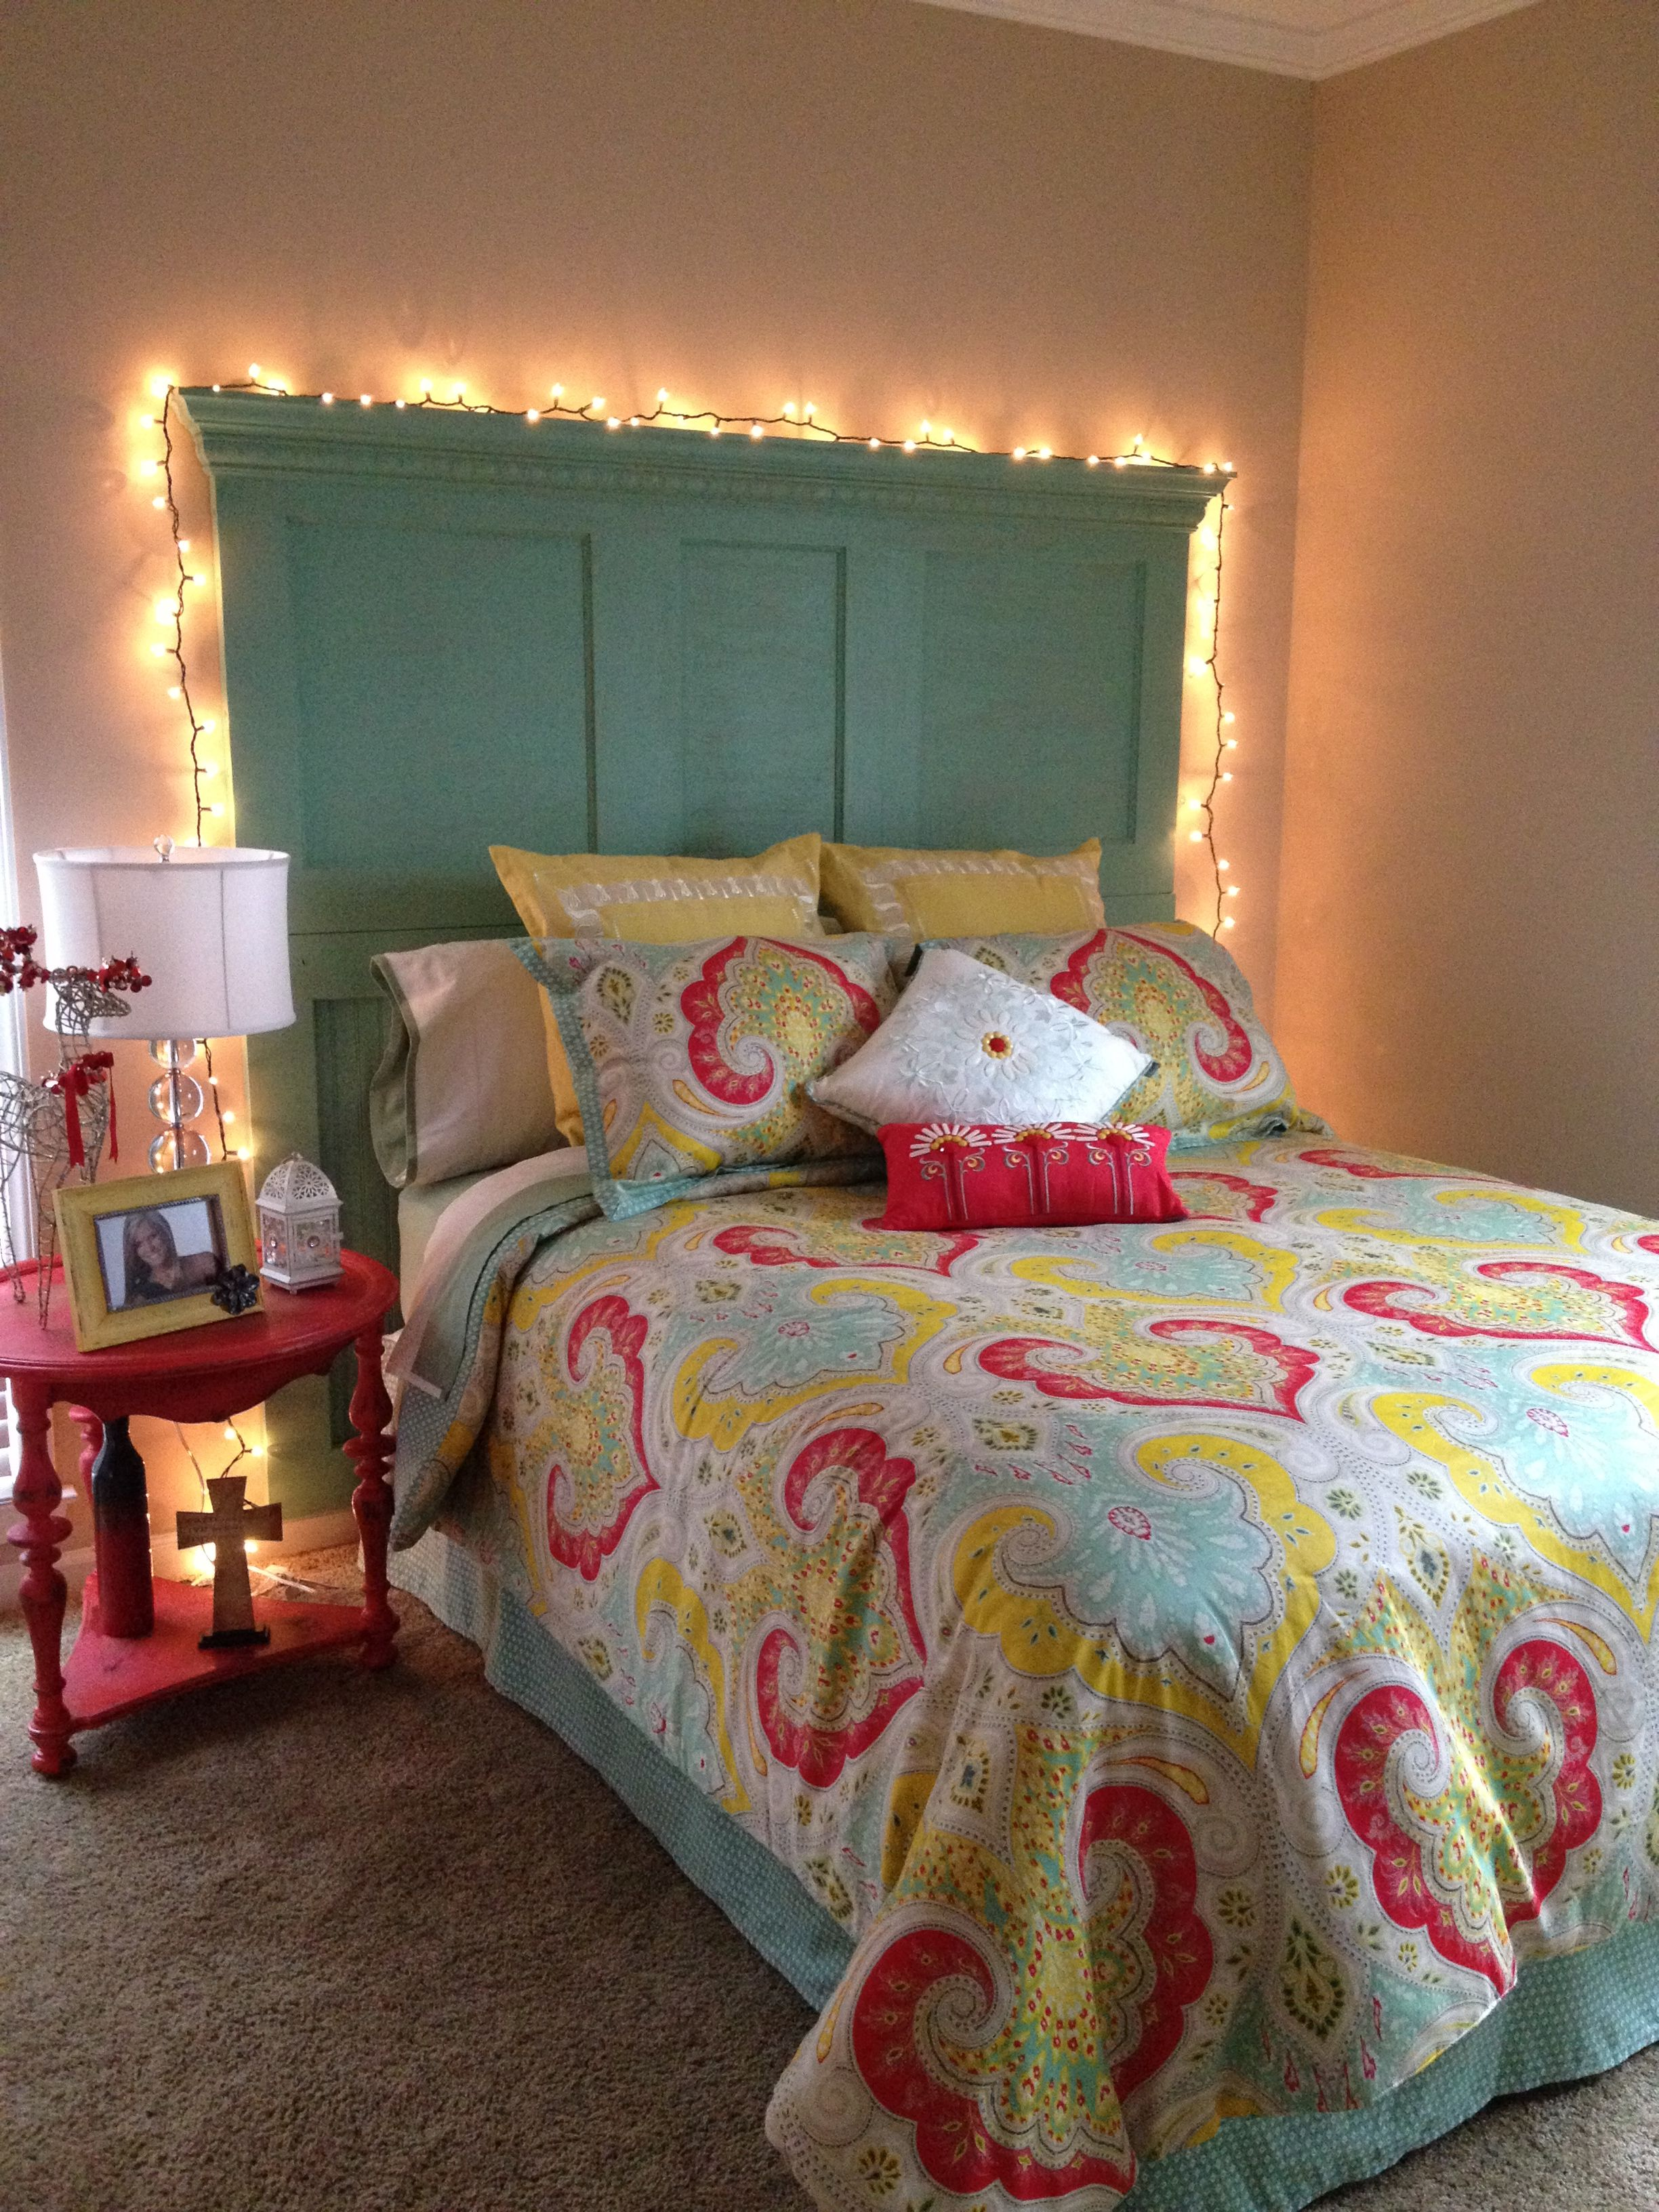 Diy room headboard made from old door with crown molding added